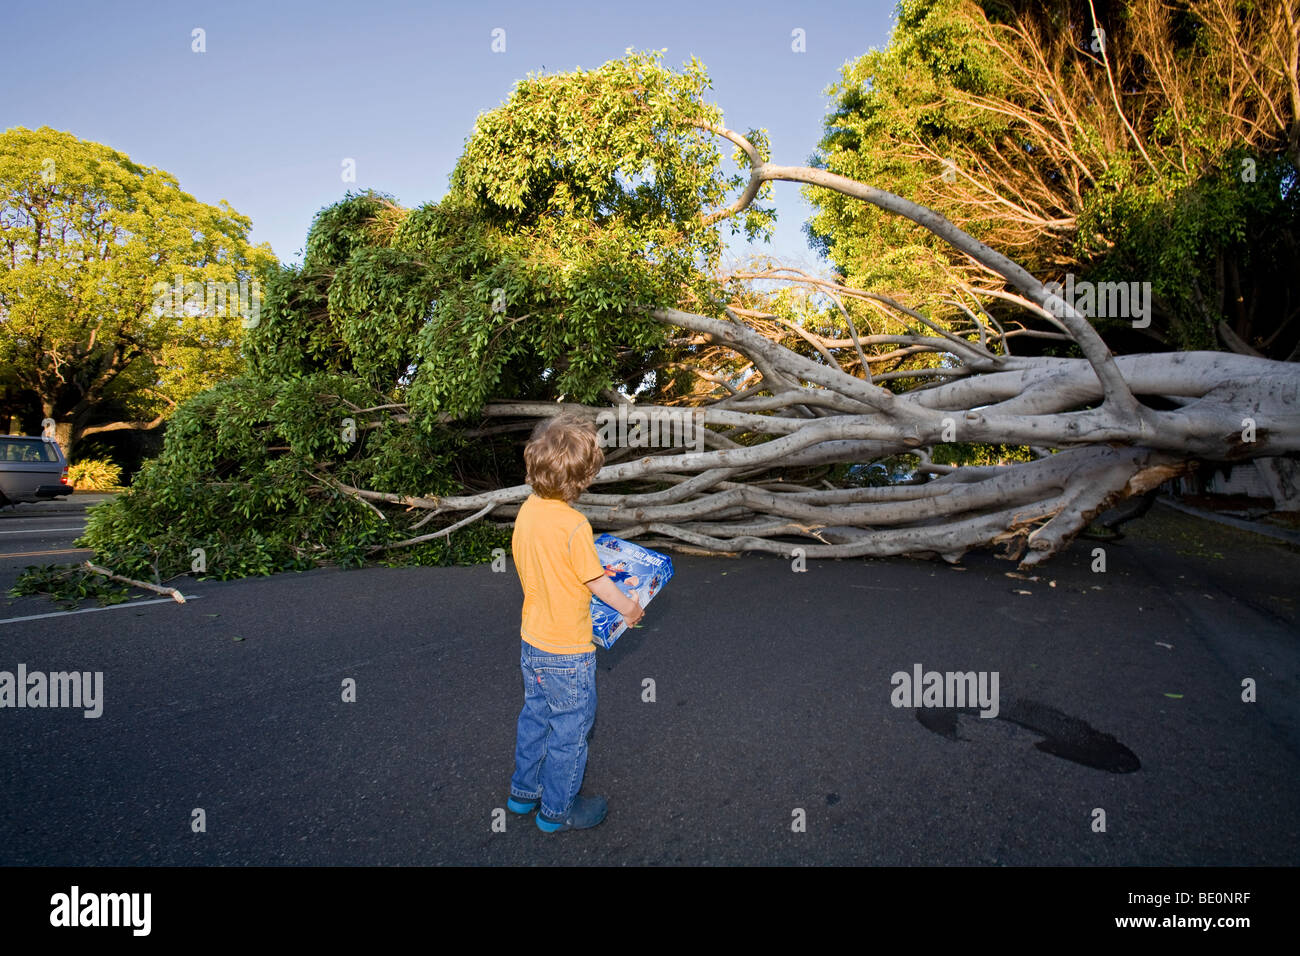 Young boy looking at fallen tree blocking street, Bundy Blvd, Los Angeles, California, USA (MR) Stock Photo